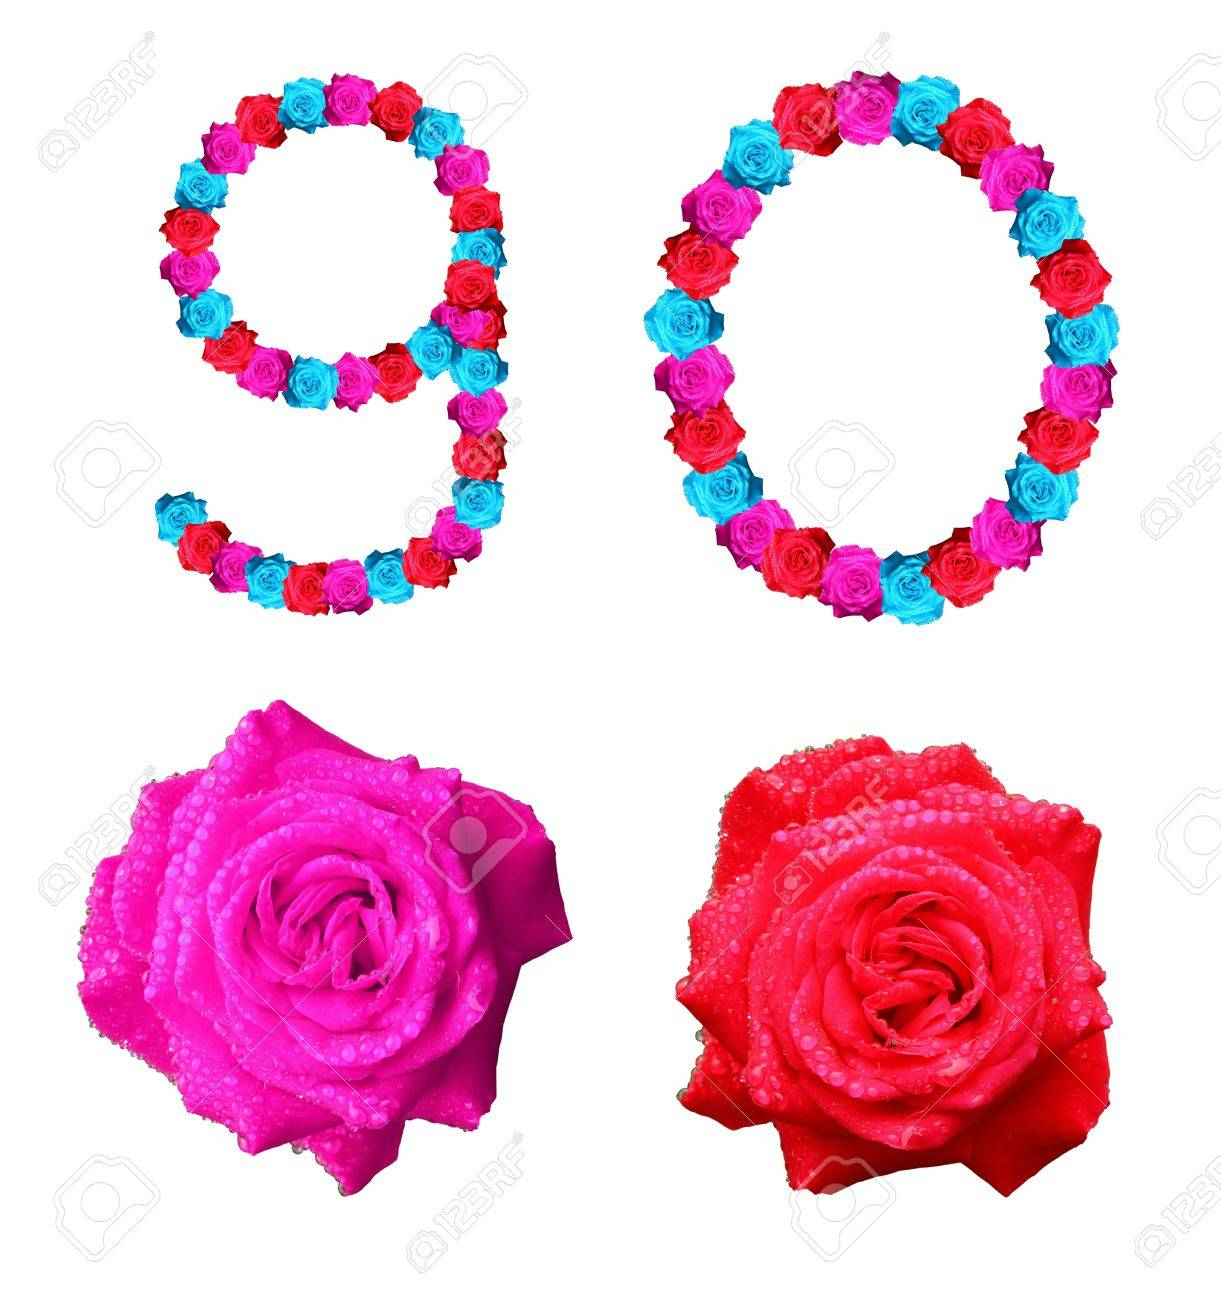 colorful of rose alphabet number - number 9,0 Stock Photo - 10057128